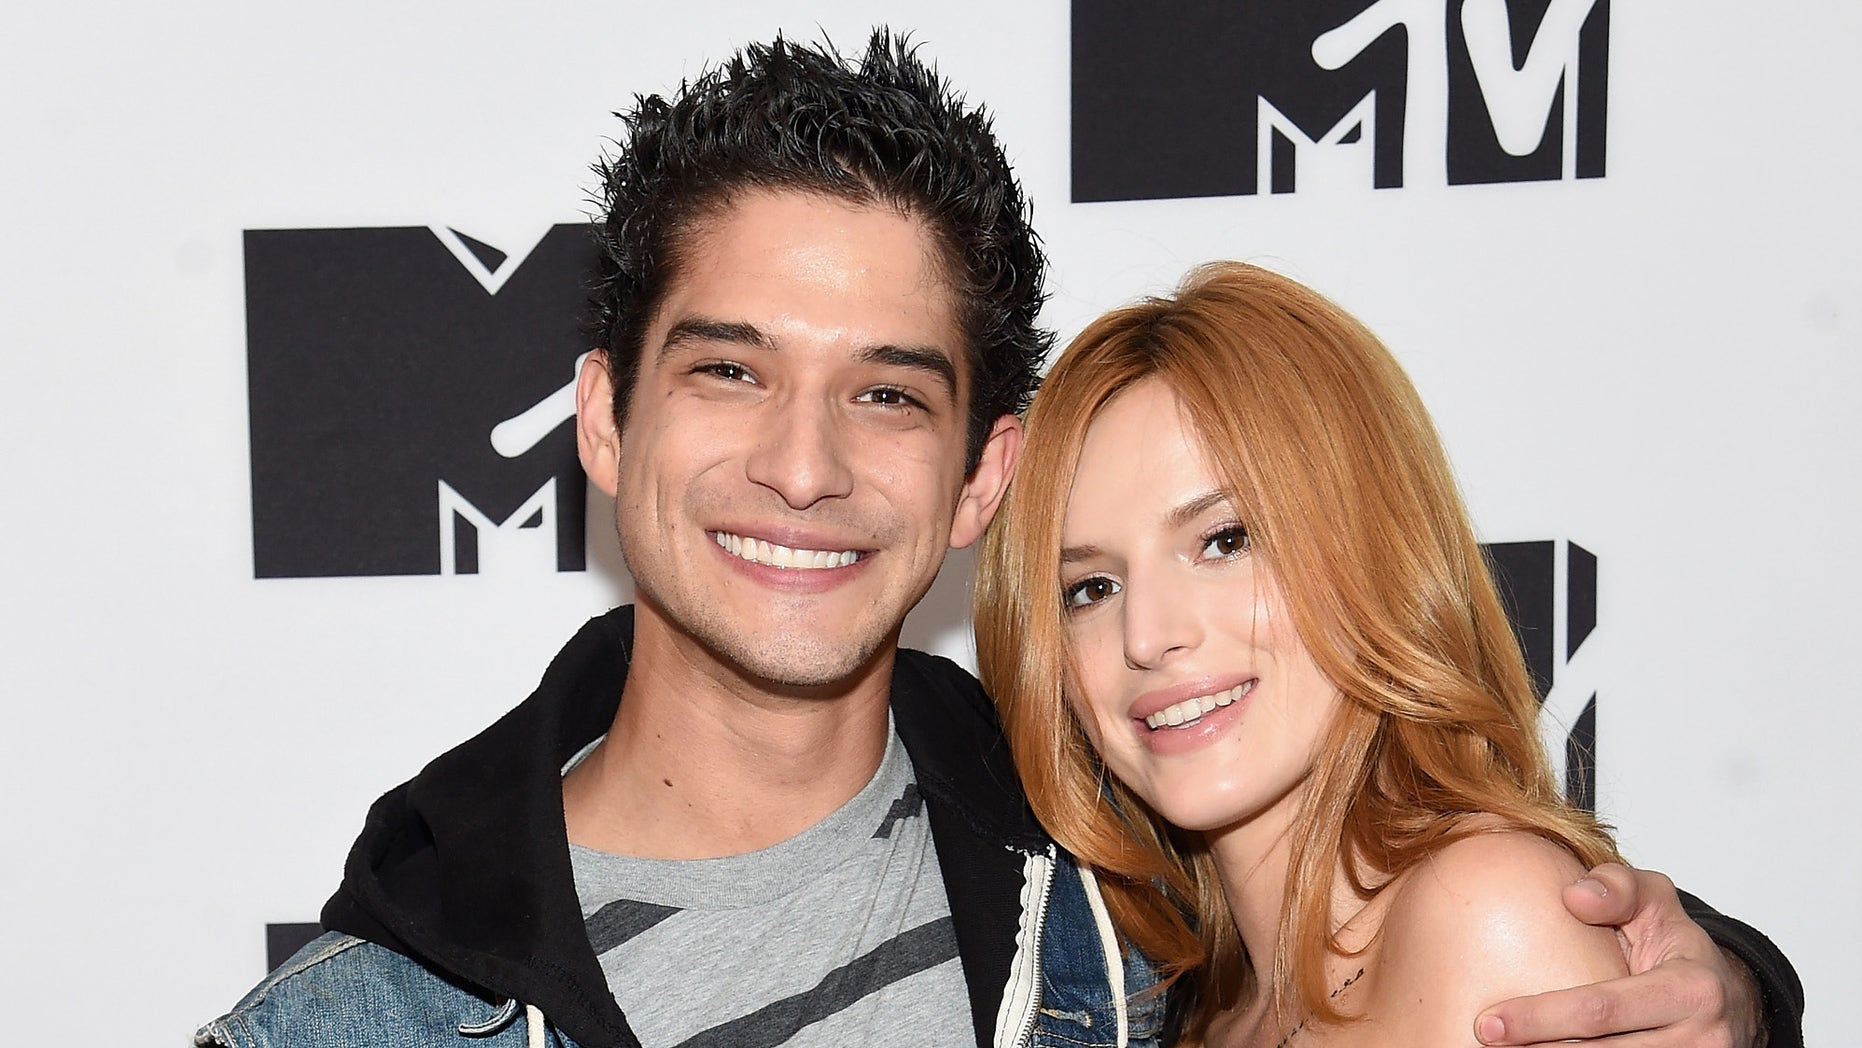 NEW YORK, NY - APRIL 21:  Tyler Posey (L) and Bella Thorne attend the MTV 2015 Upfront presentation on April 21, 2015 in New York City.  (Photo by Jamie McCarthy/Getty Images for MTV)